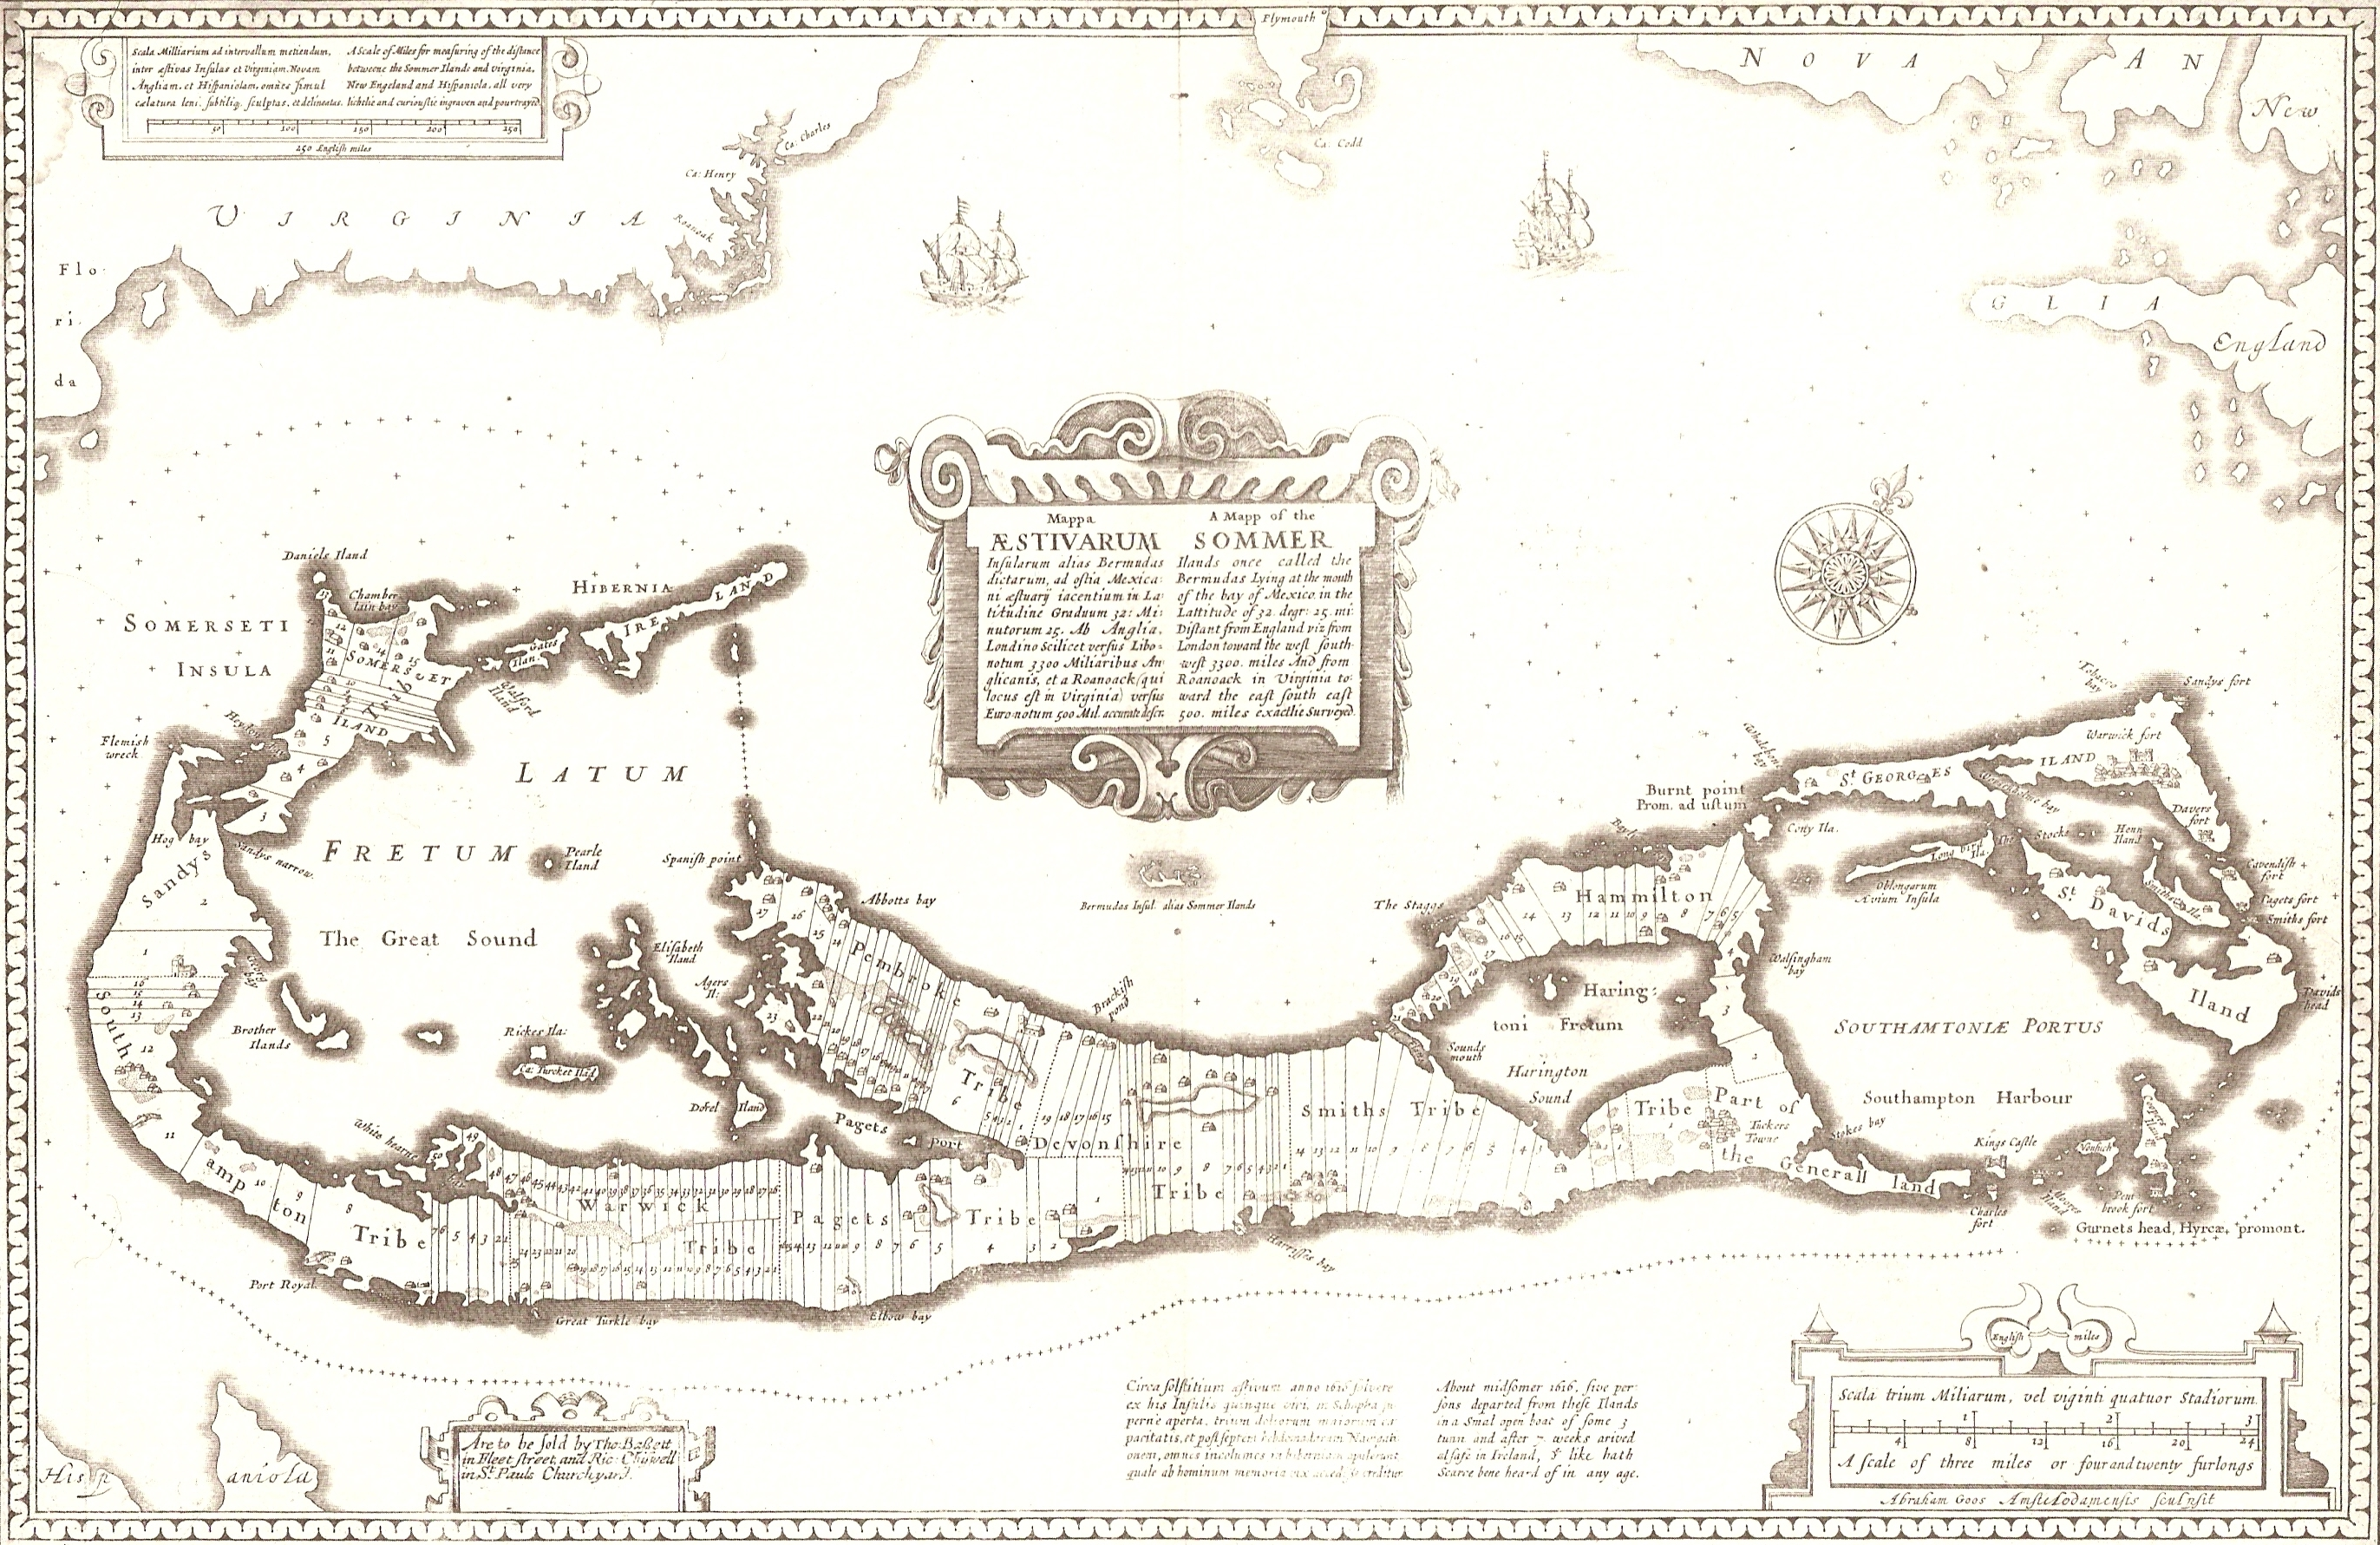 Somers Isles 1676